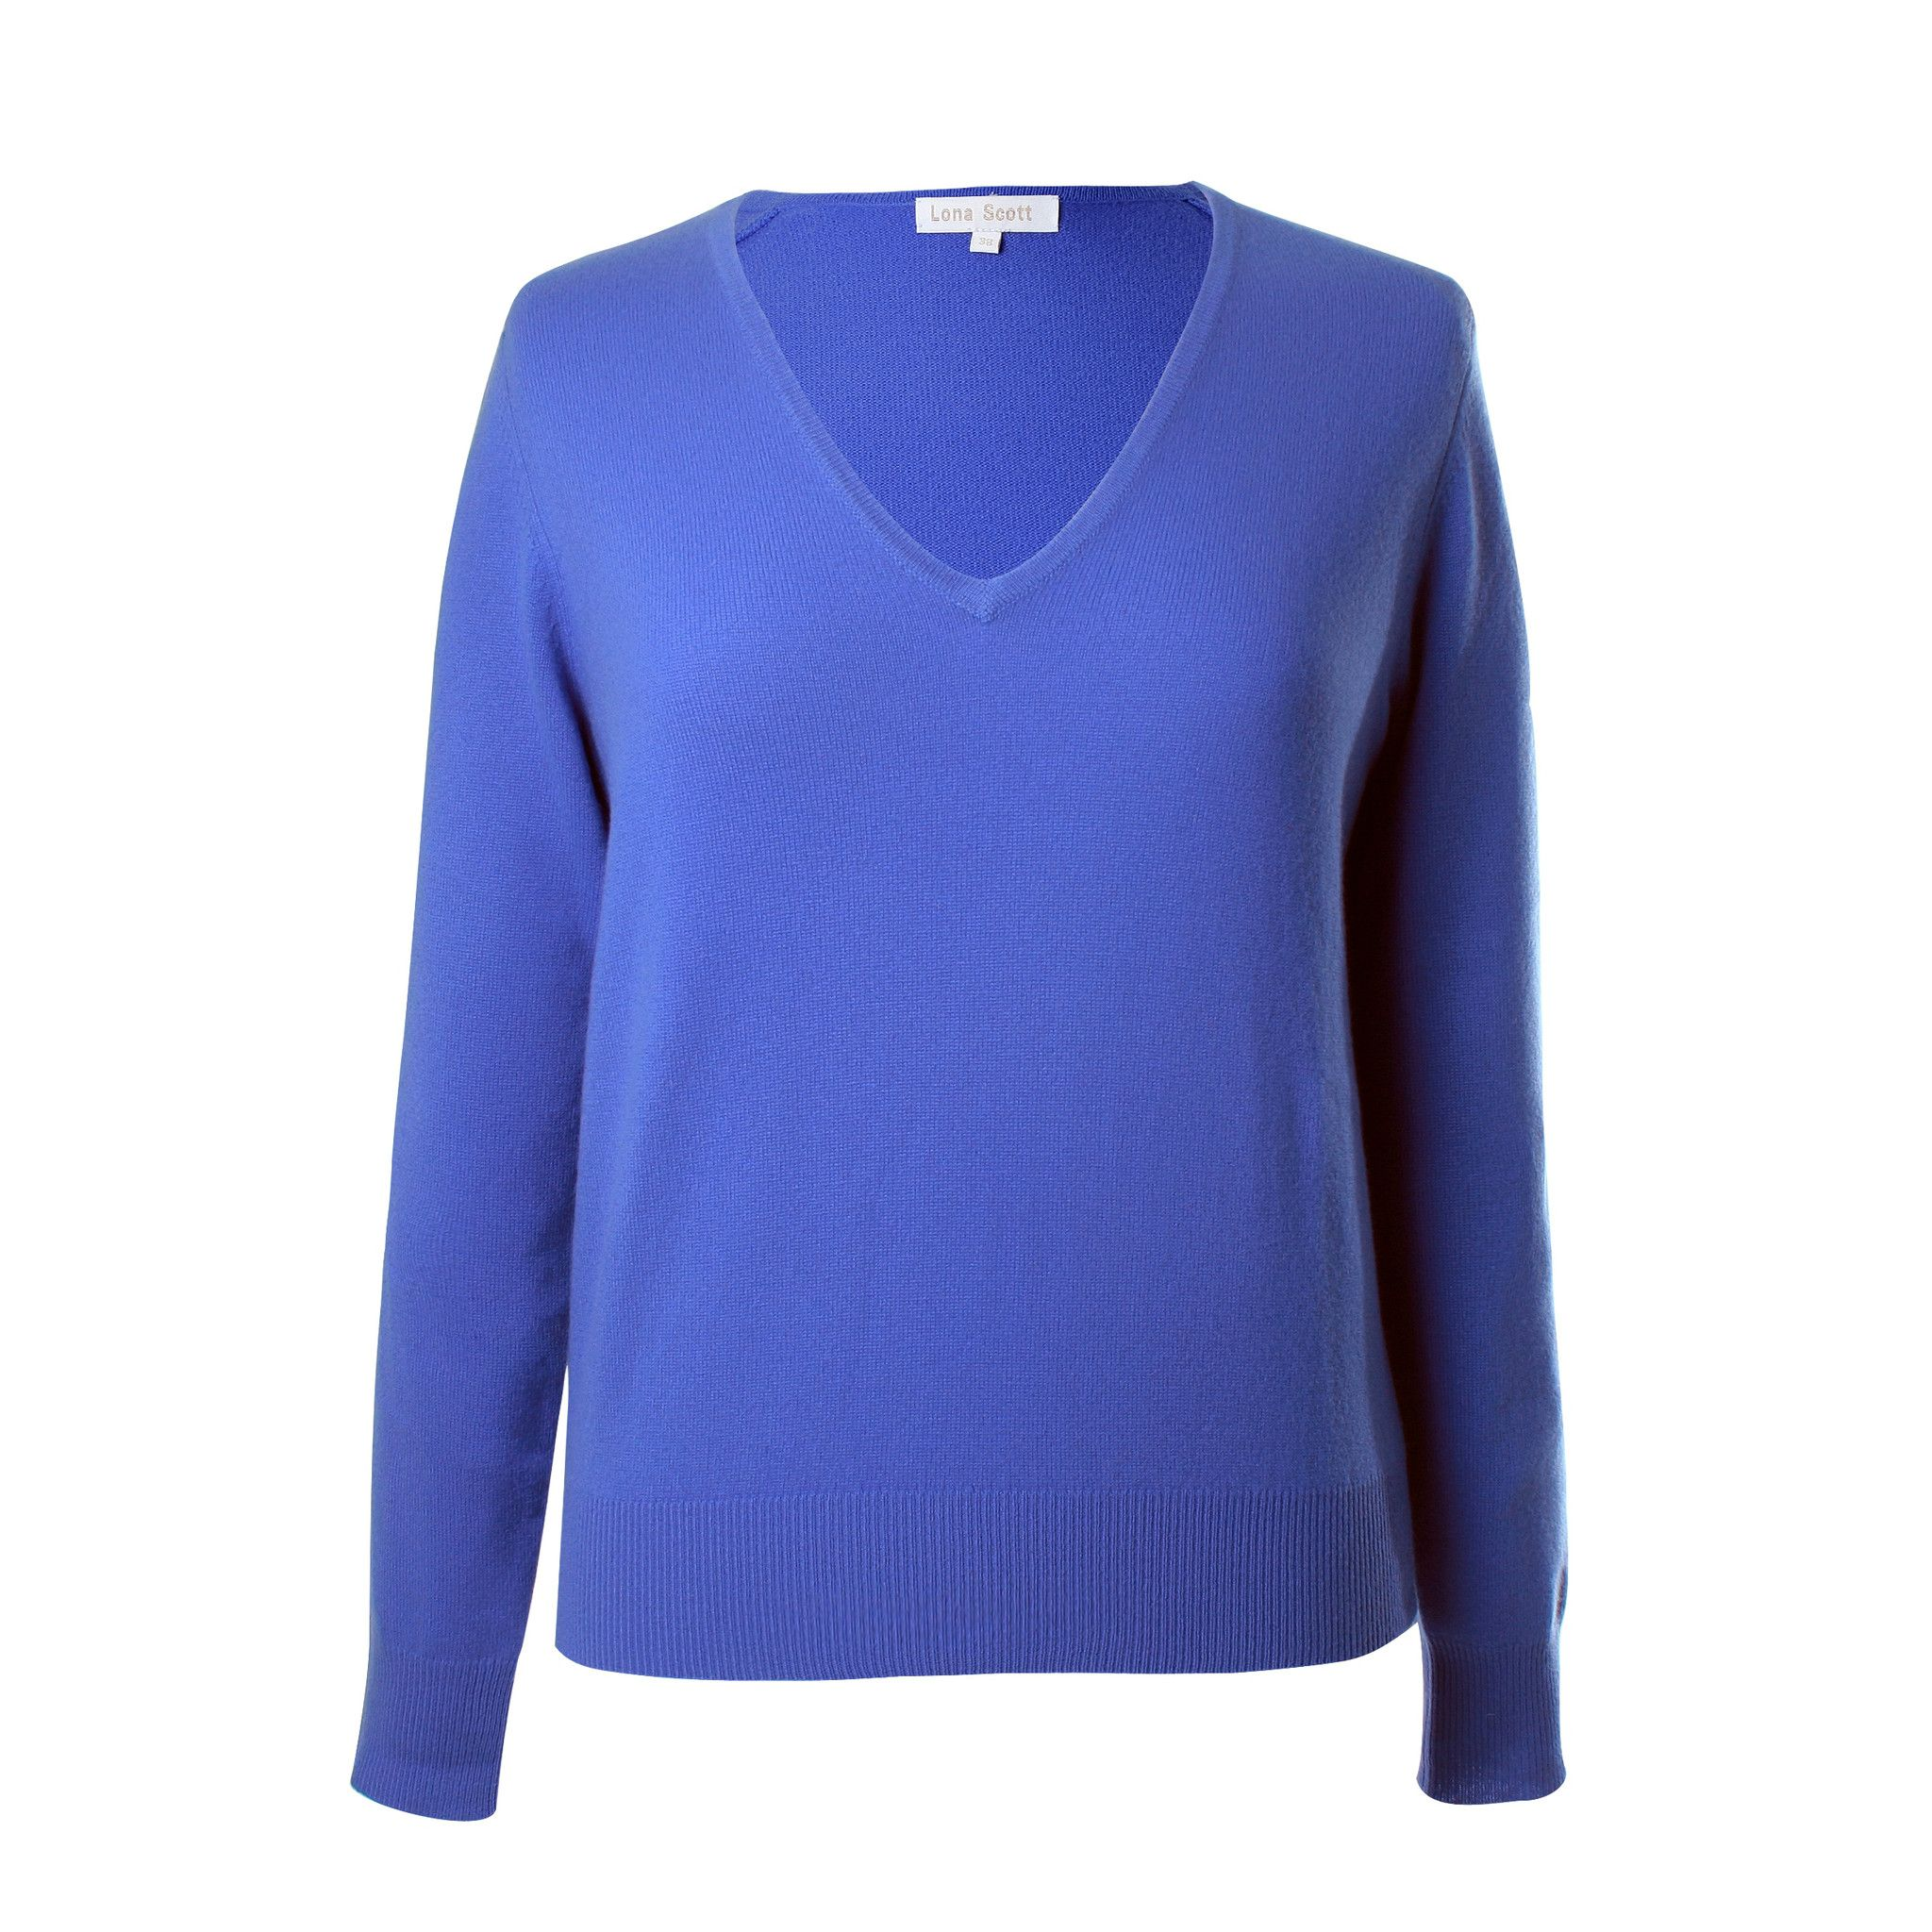 Cornflower Blue Ladies Cashmere V Neck Sweater | Tops | Pinterest ...